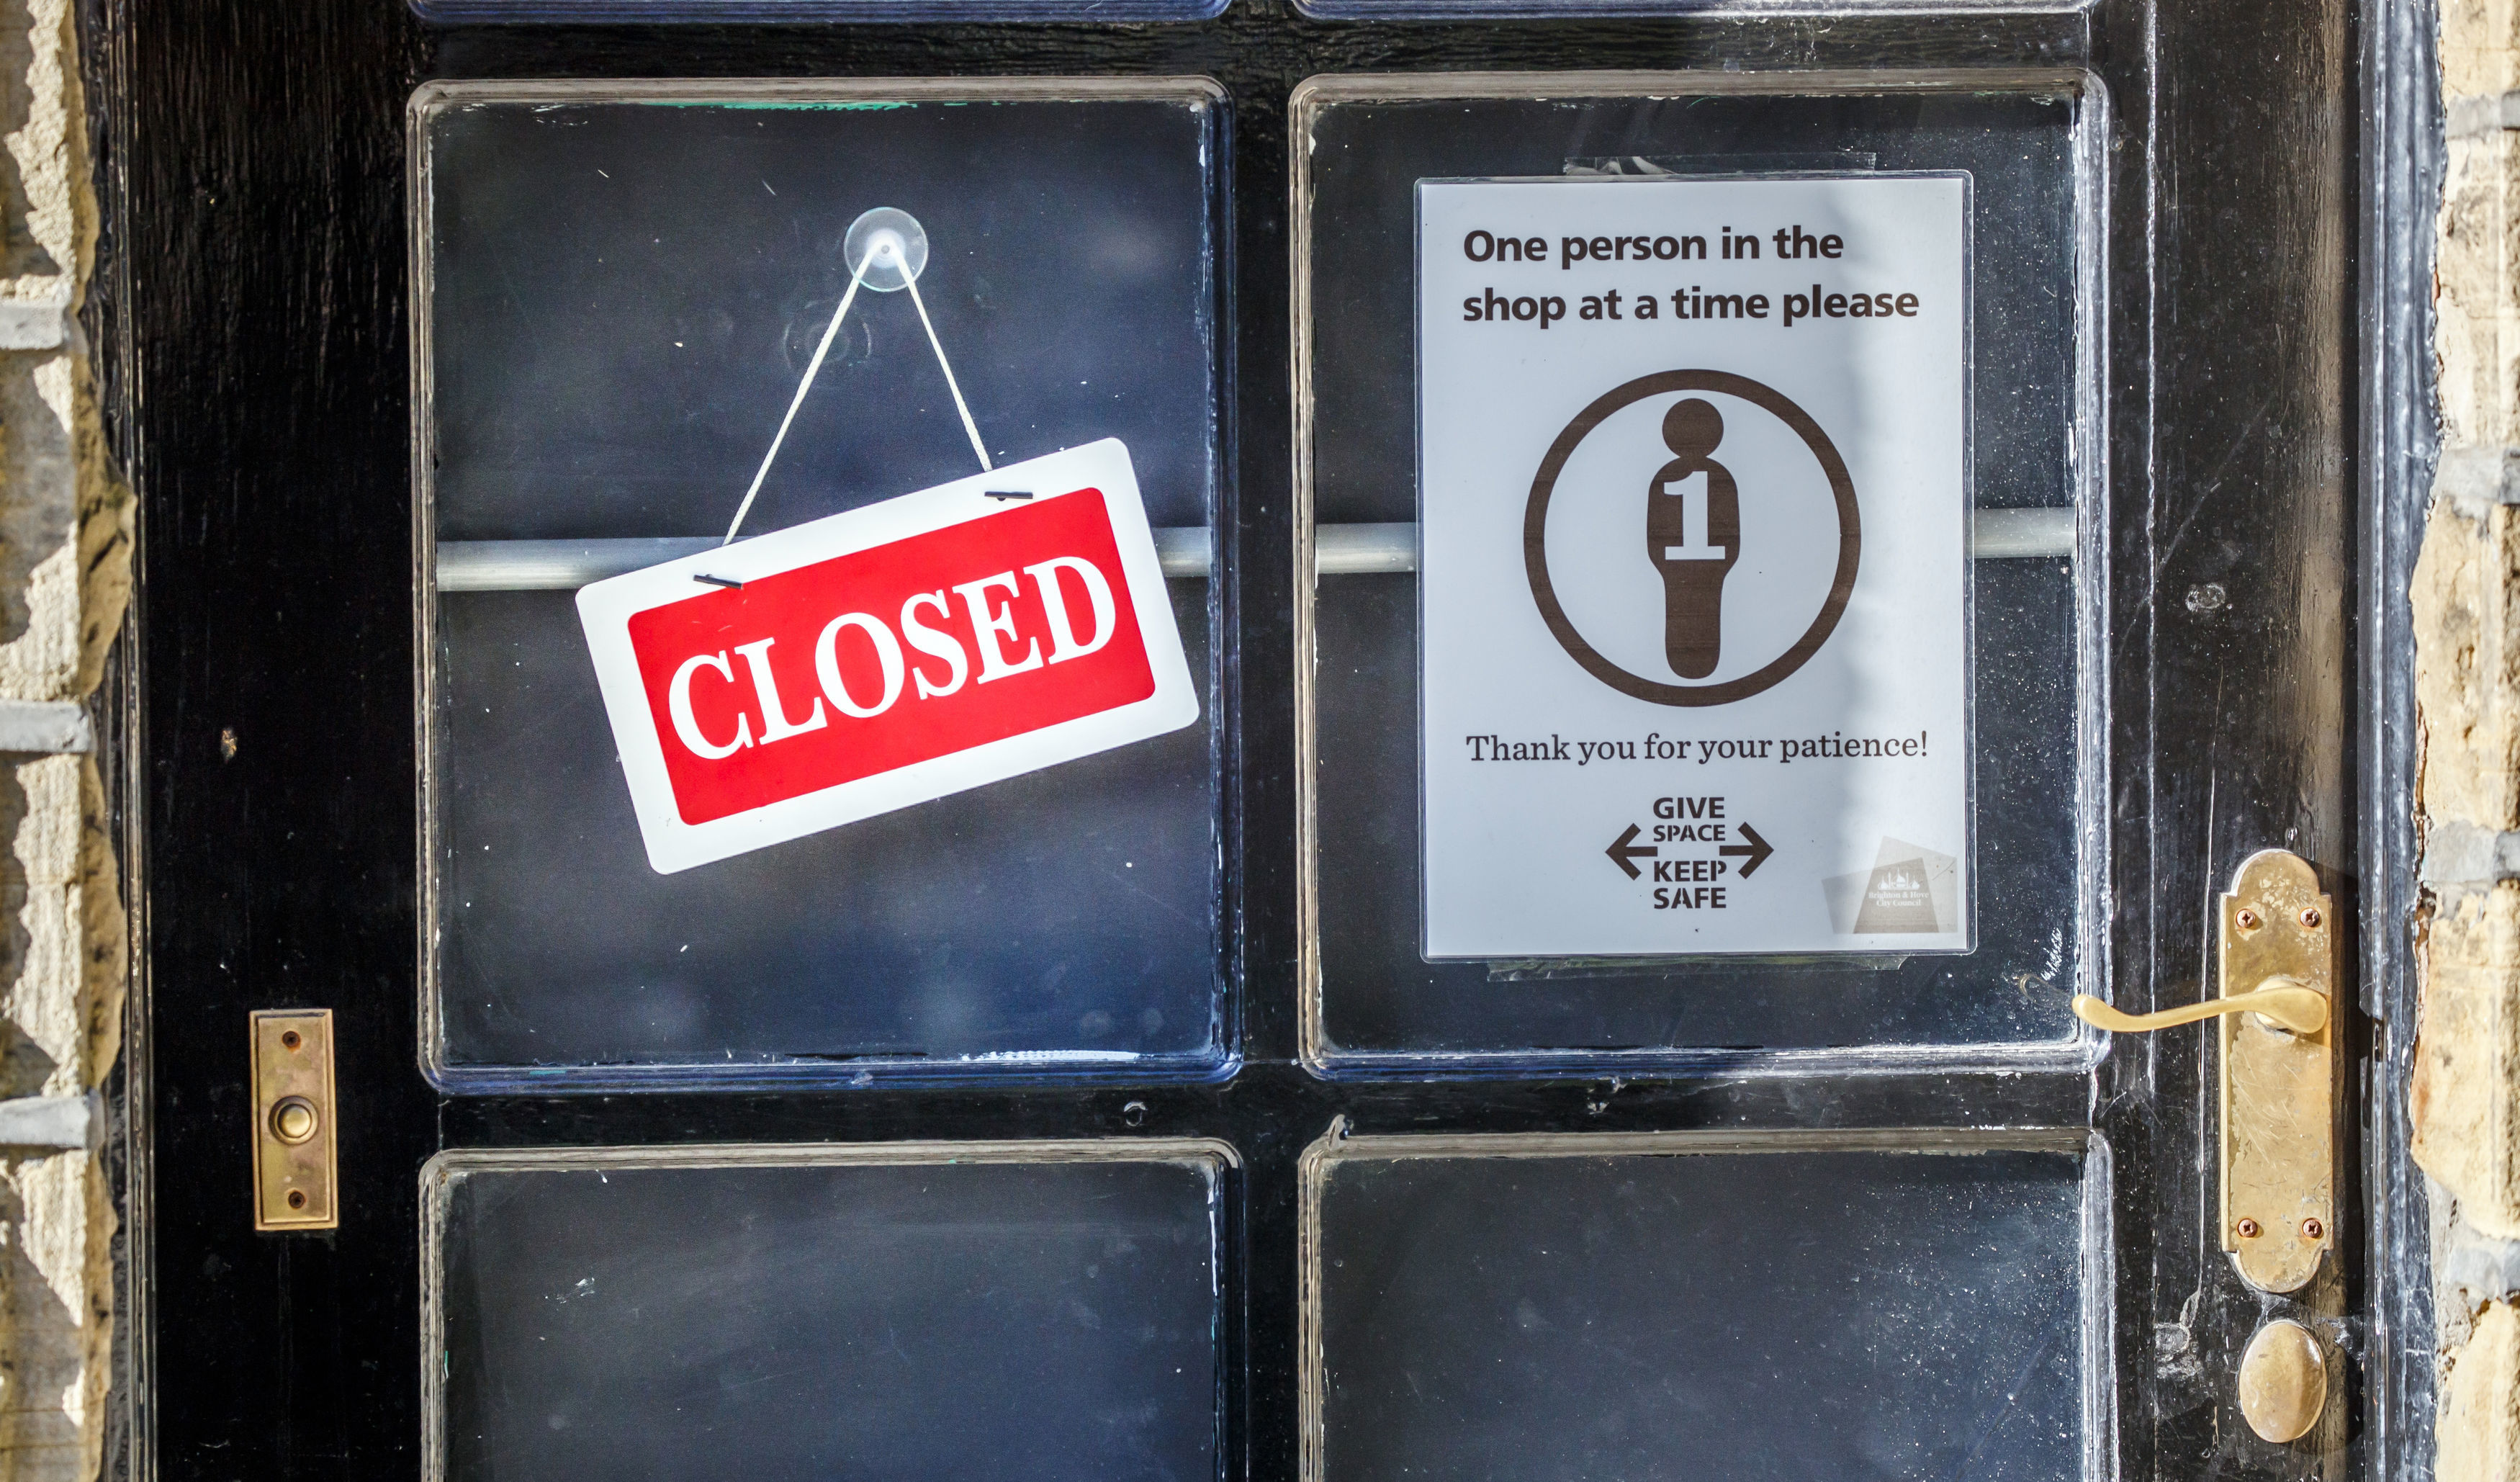 All non-essential shops are expected to close from next week as England is plunged back into a national lockdown for a month